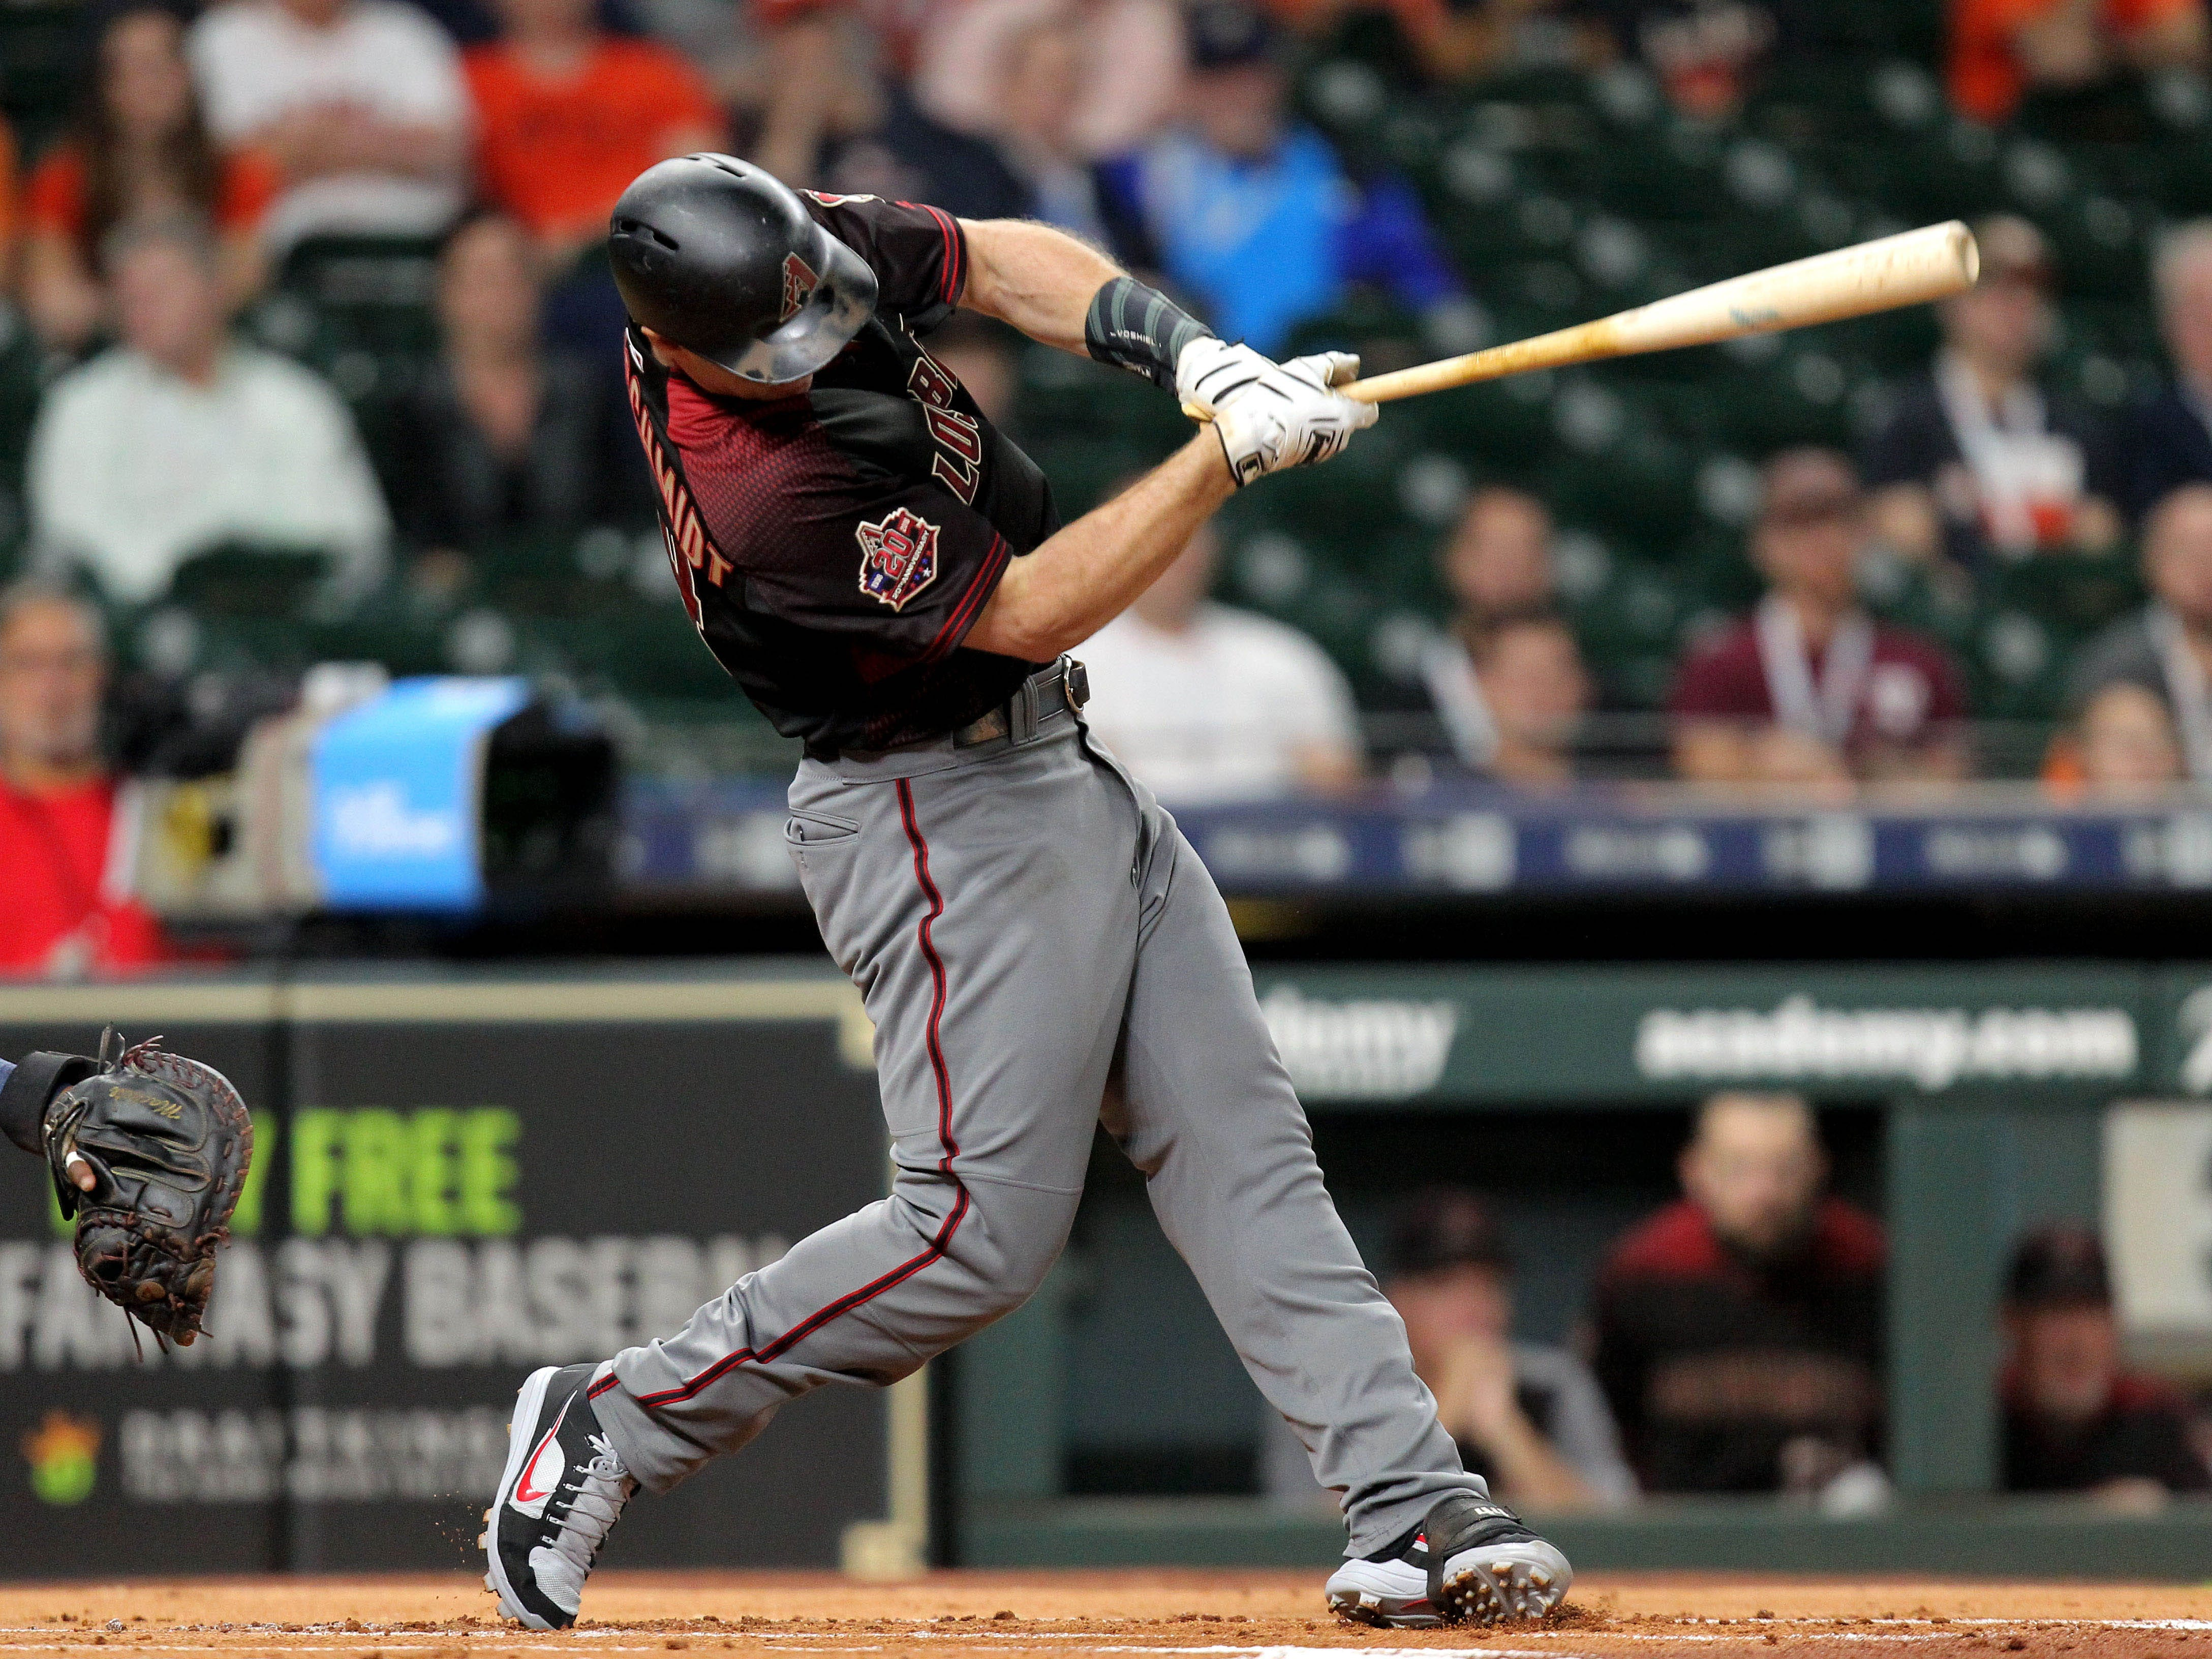 Sep 14, 2018: Arizona Diamondbacks first baseman Paul Goldschmidt (44) hits a double to left field against the Houston Astros during the first inning at Minute Maid Park.